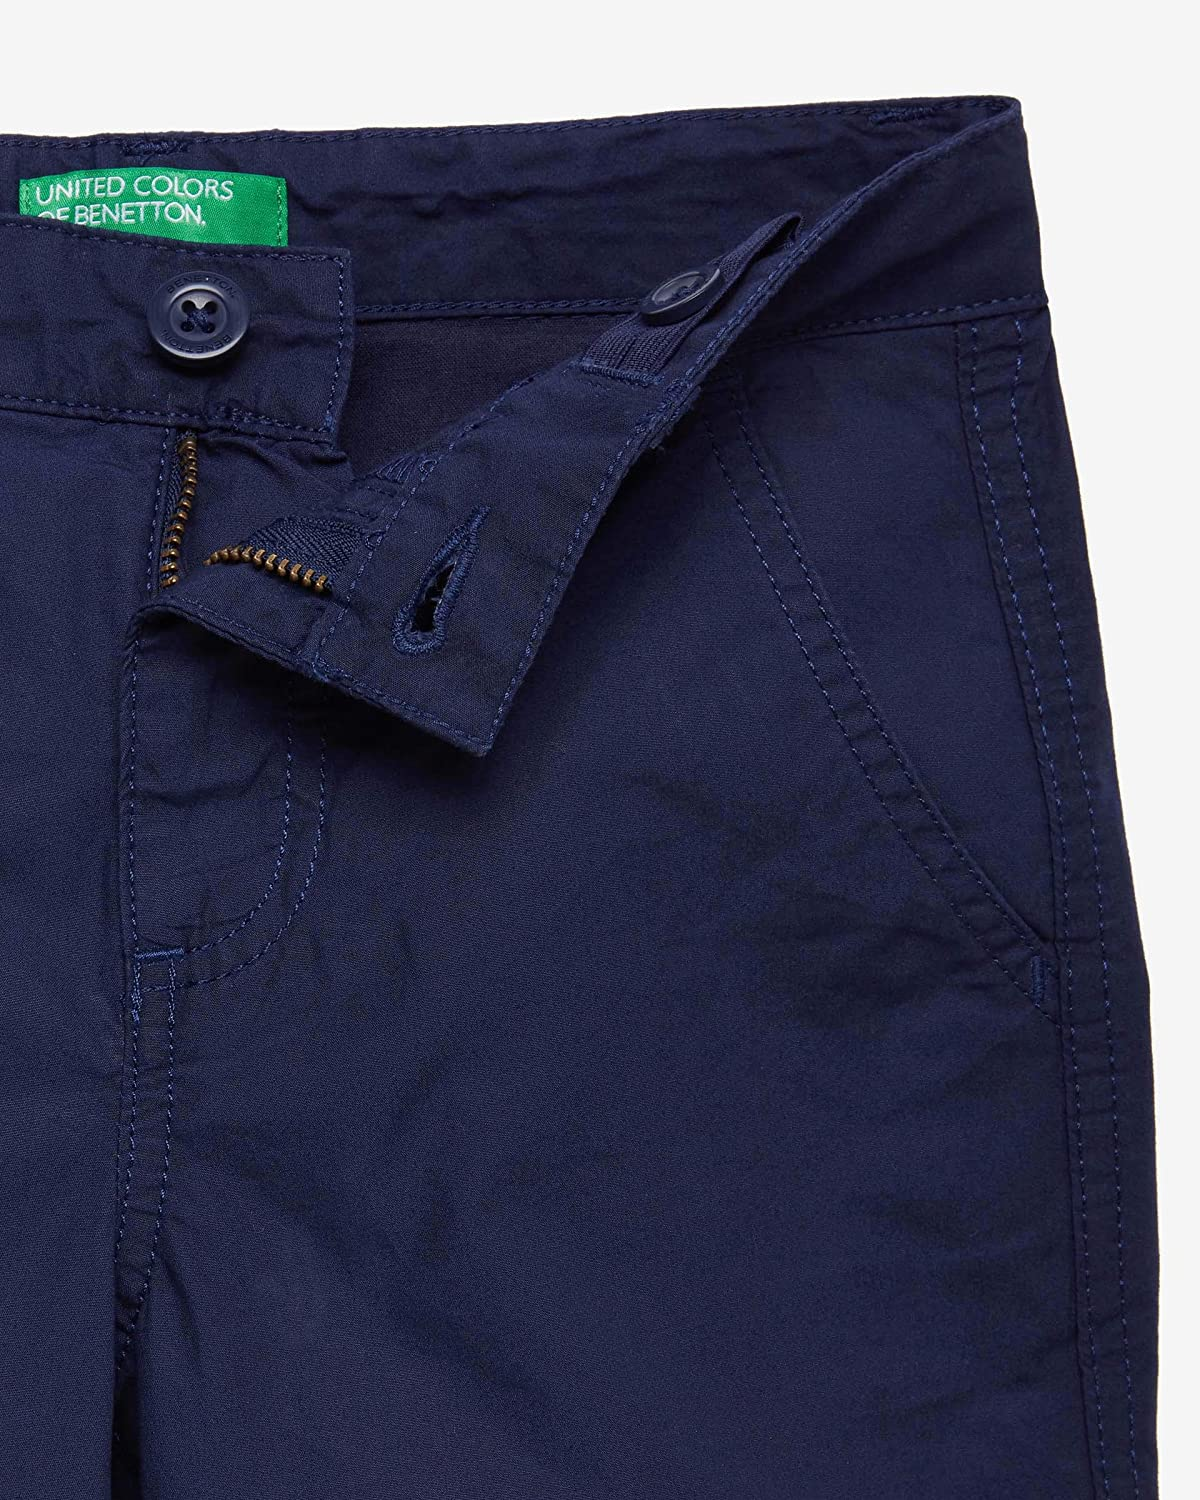 United Colors of Benetton Pantaloncini Bambino